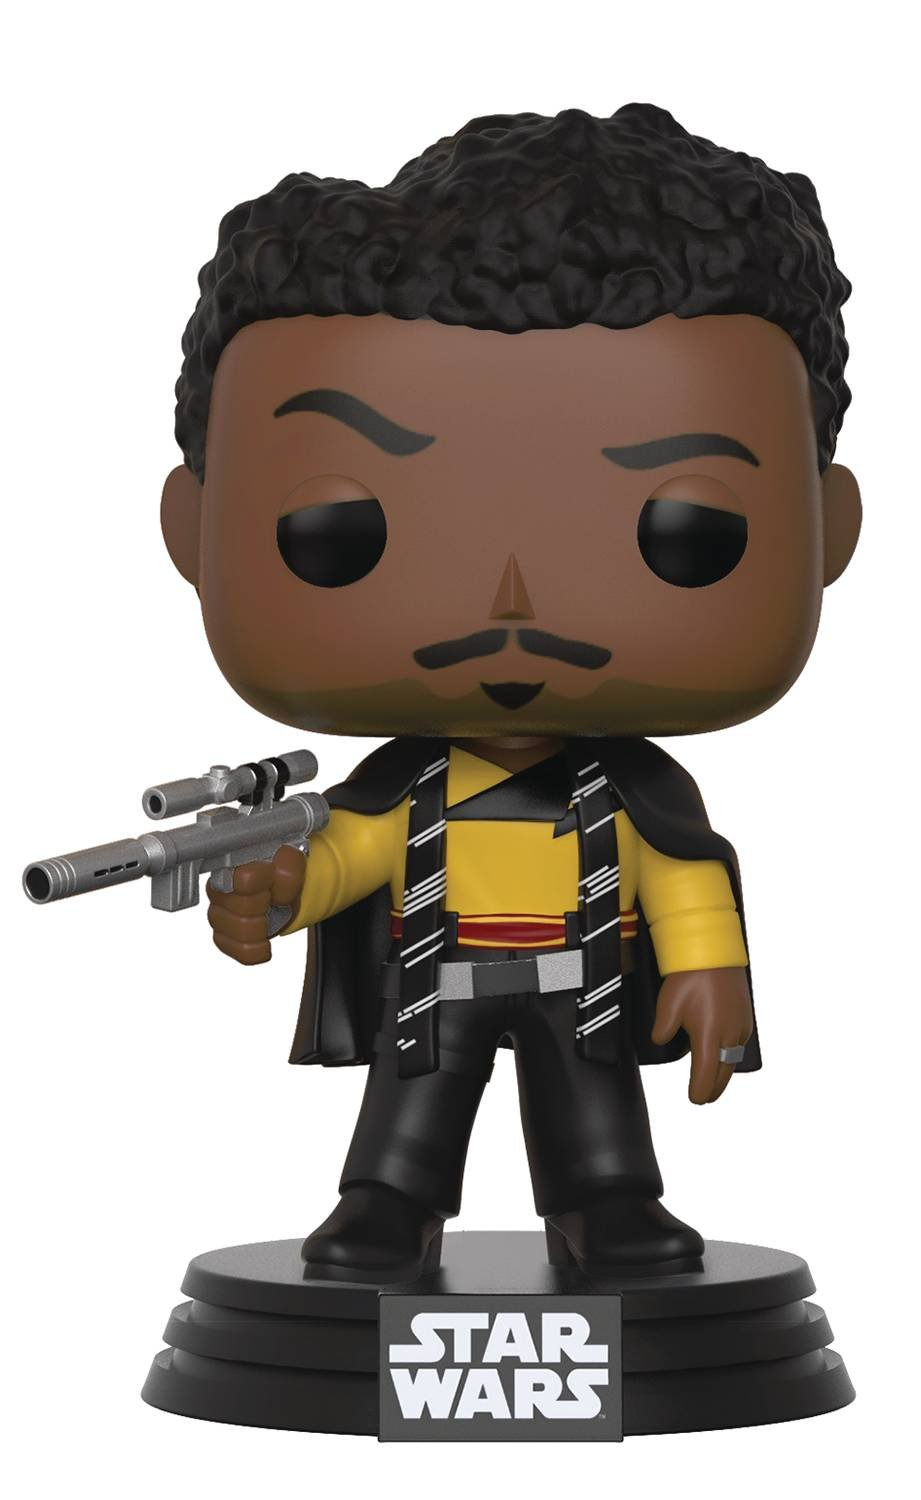 POP STAR WARS SOLO W1 LANDO CALRISSIAN VIN FIG